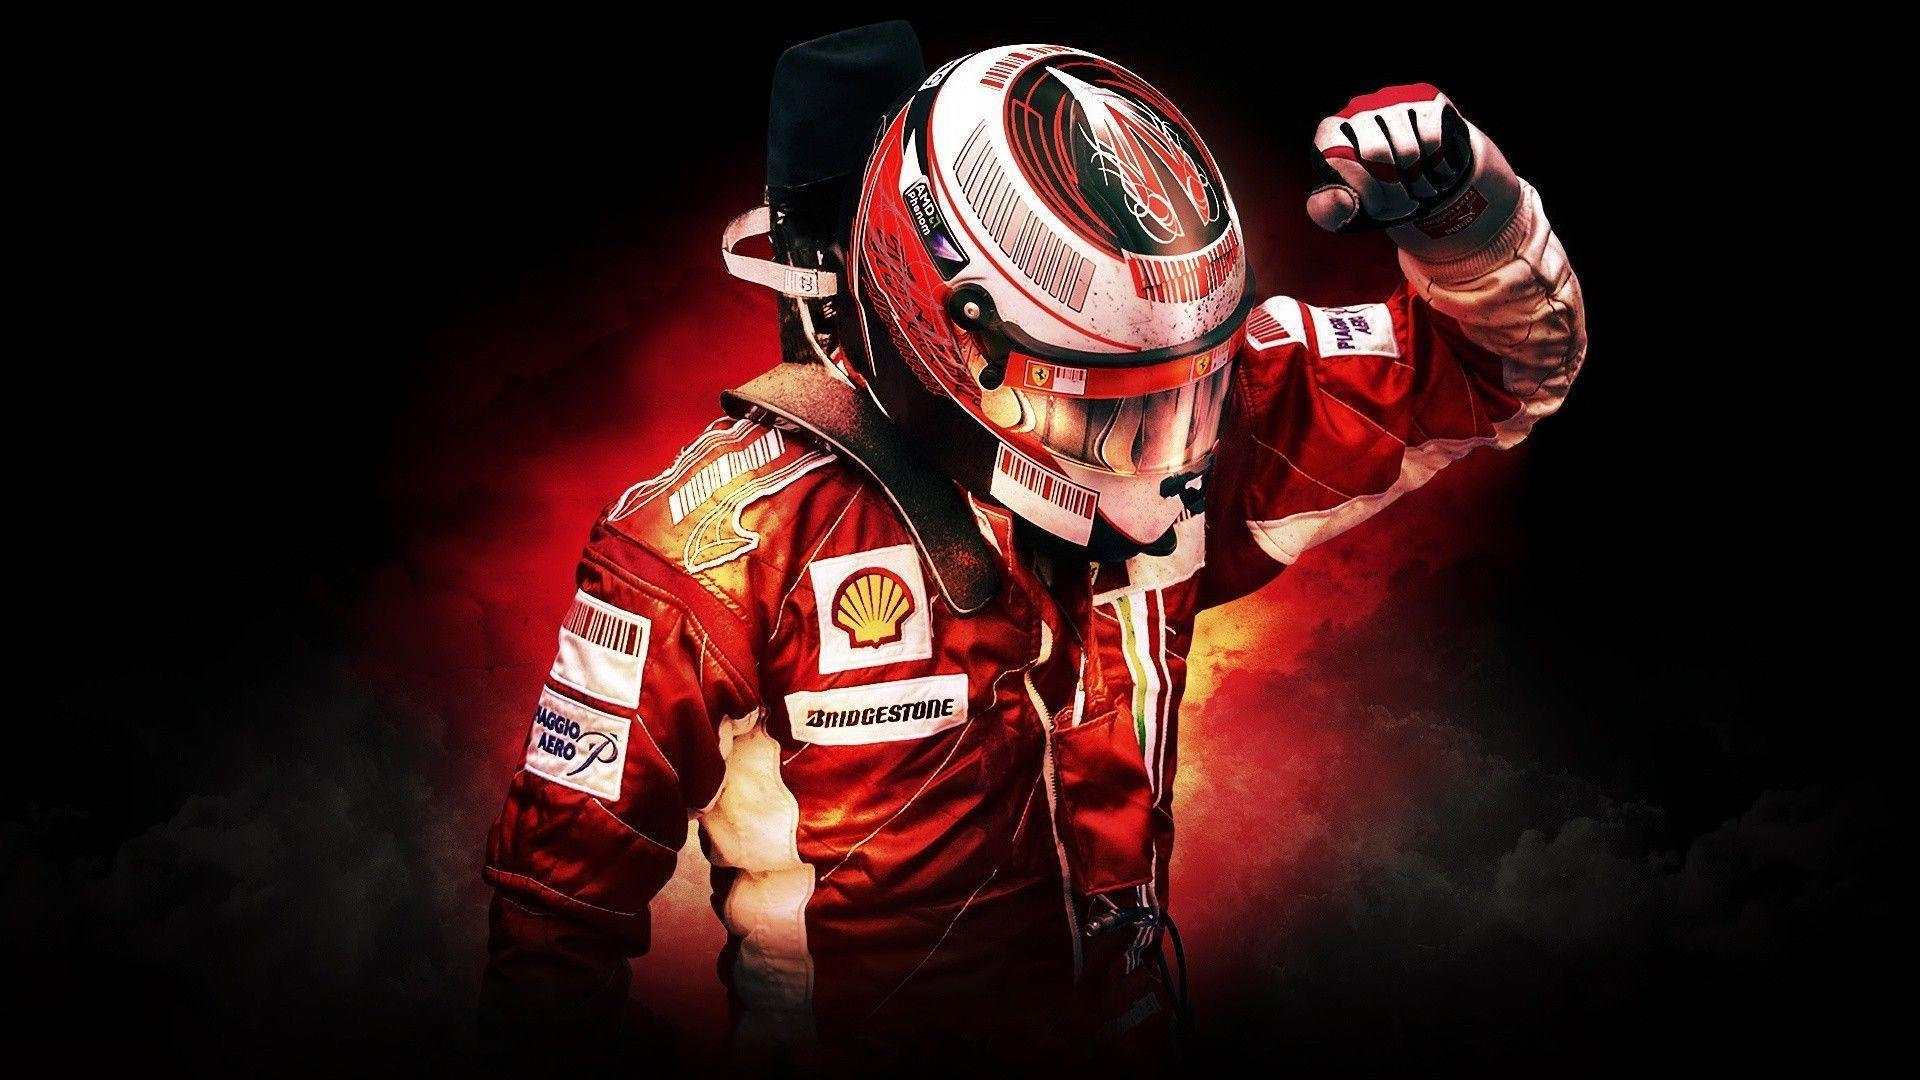 Formula 1, Scuderia Ferrari, Kimi Raikkonen, Sports Wallpapers HD